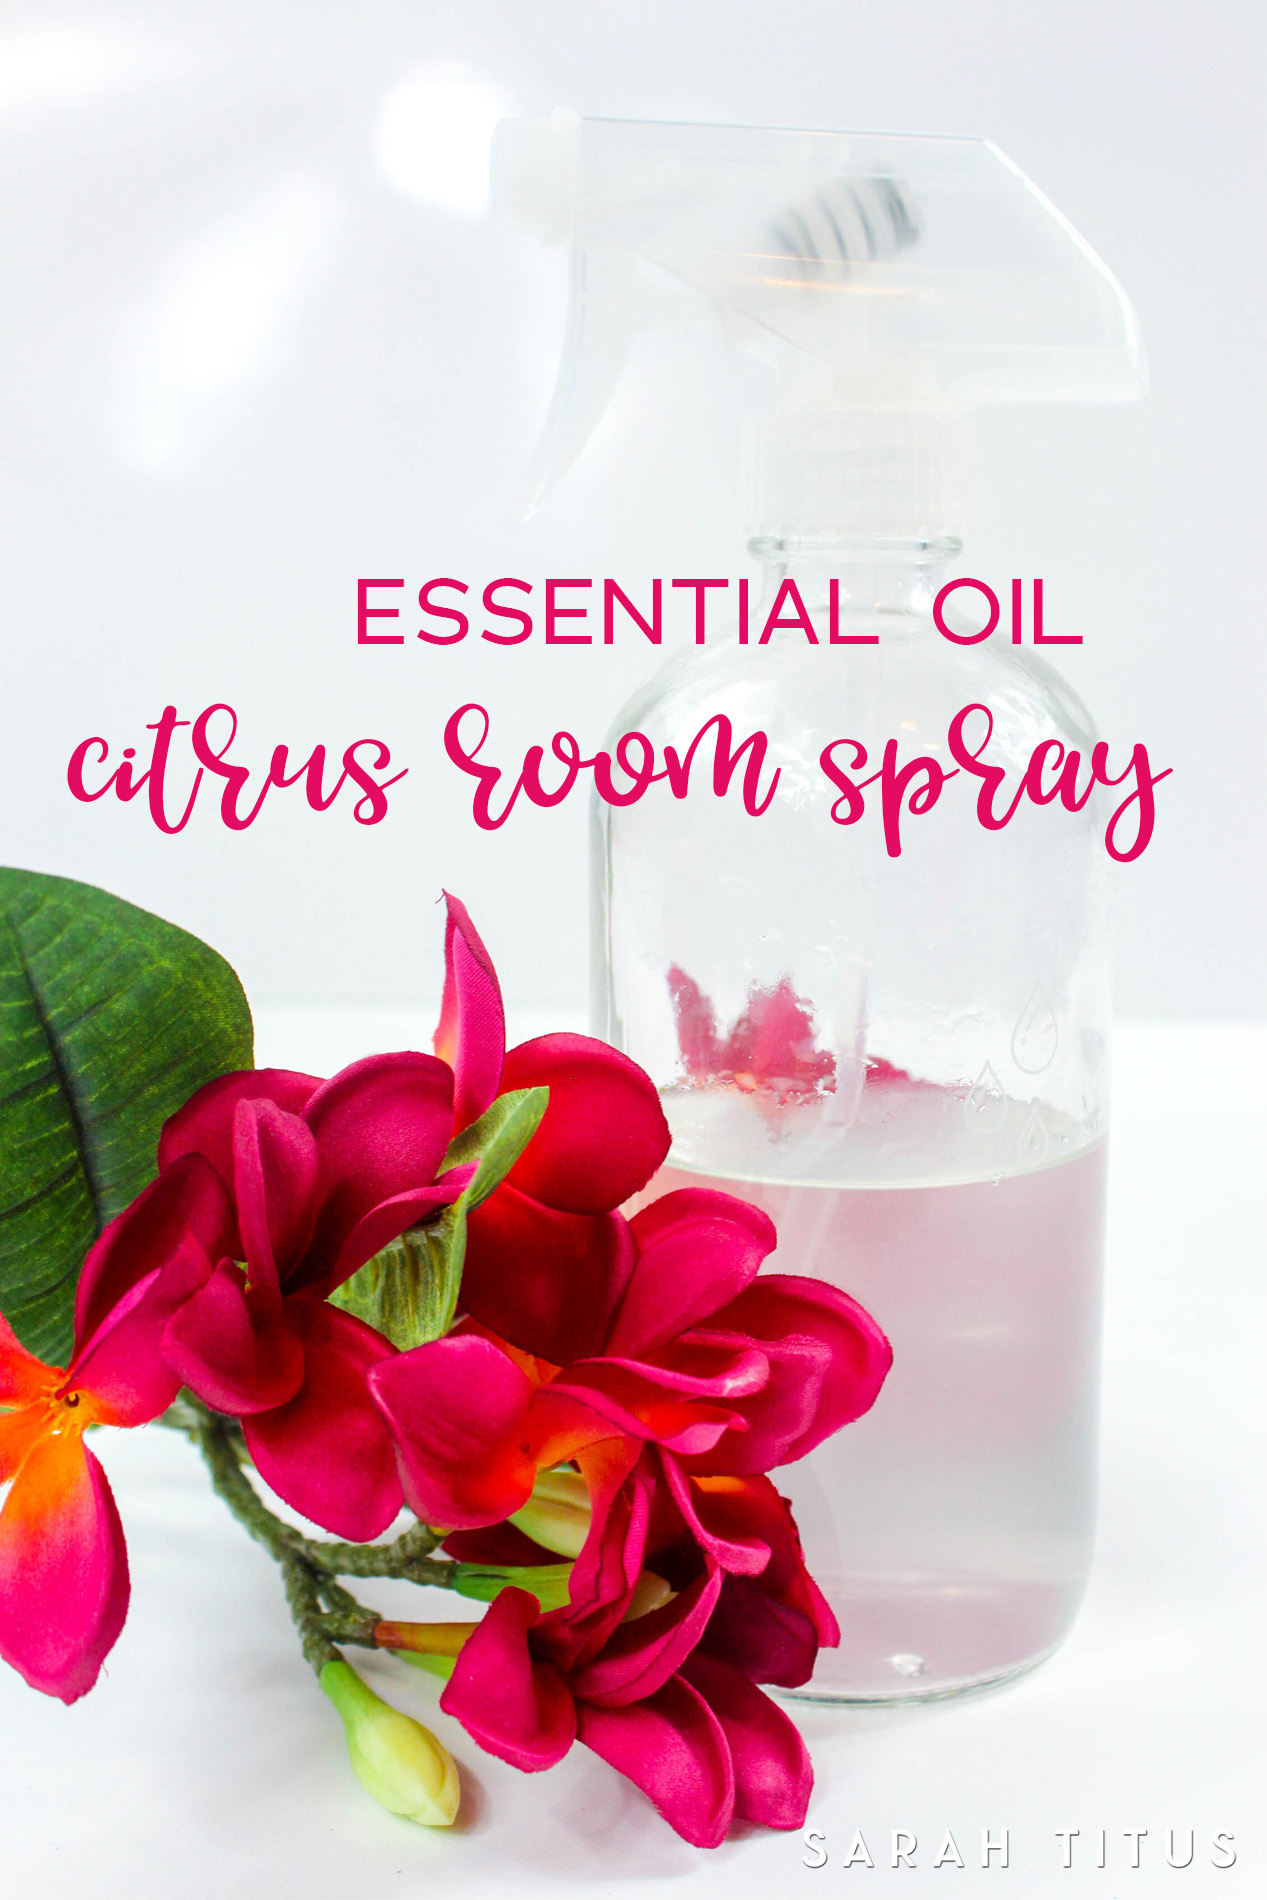 Whenever company is coming, I take out my essential oil citrus room spray and spray it in the air. Smells like a nice, fresh, clean home!